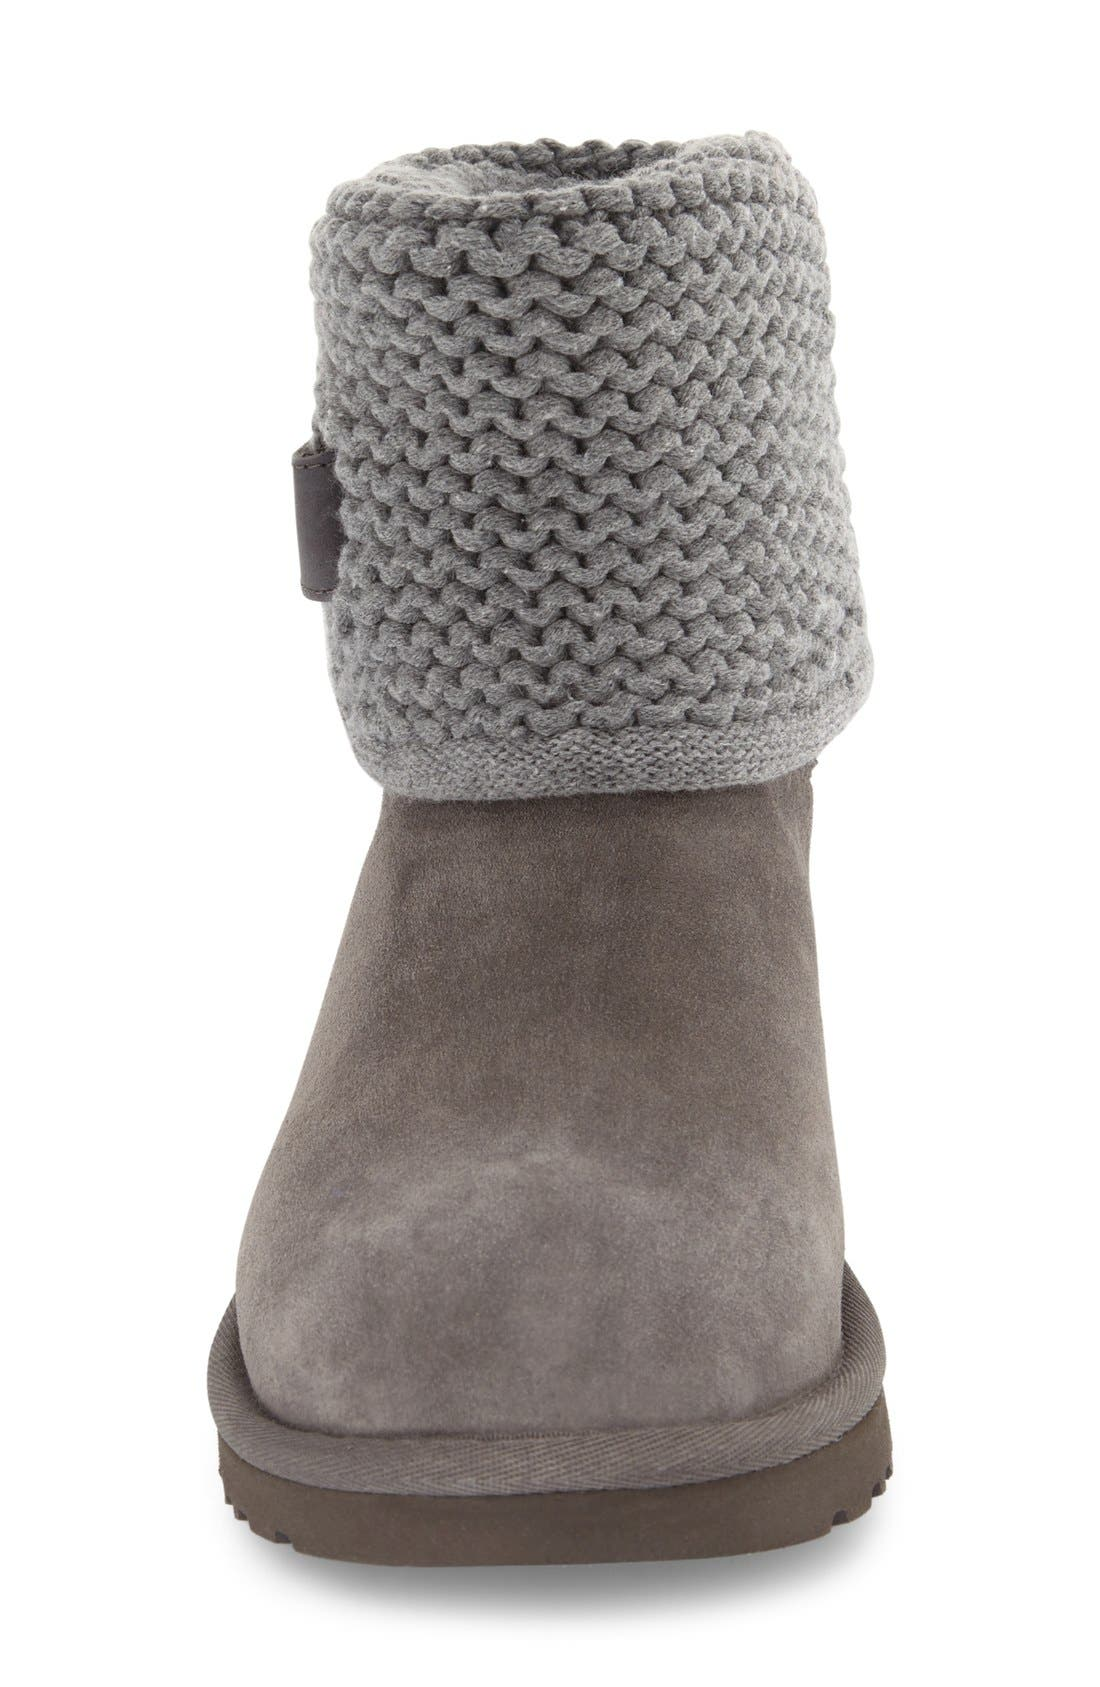 Shaina Knit Cuff Bootie,                             Alternate thumbnail 9, color,